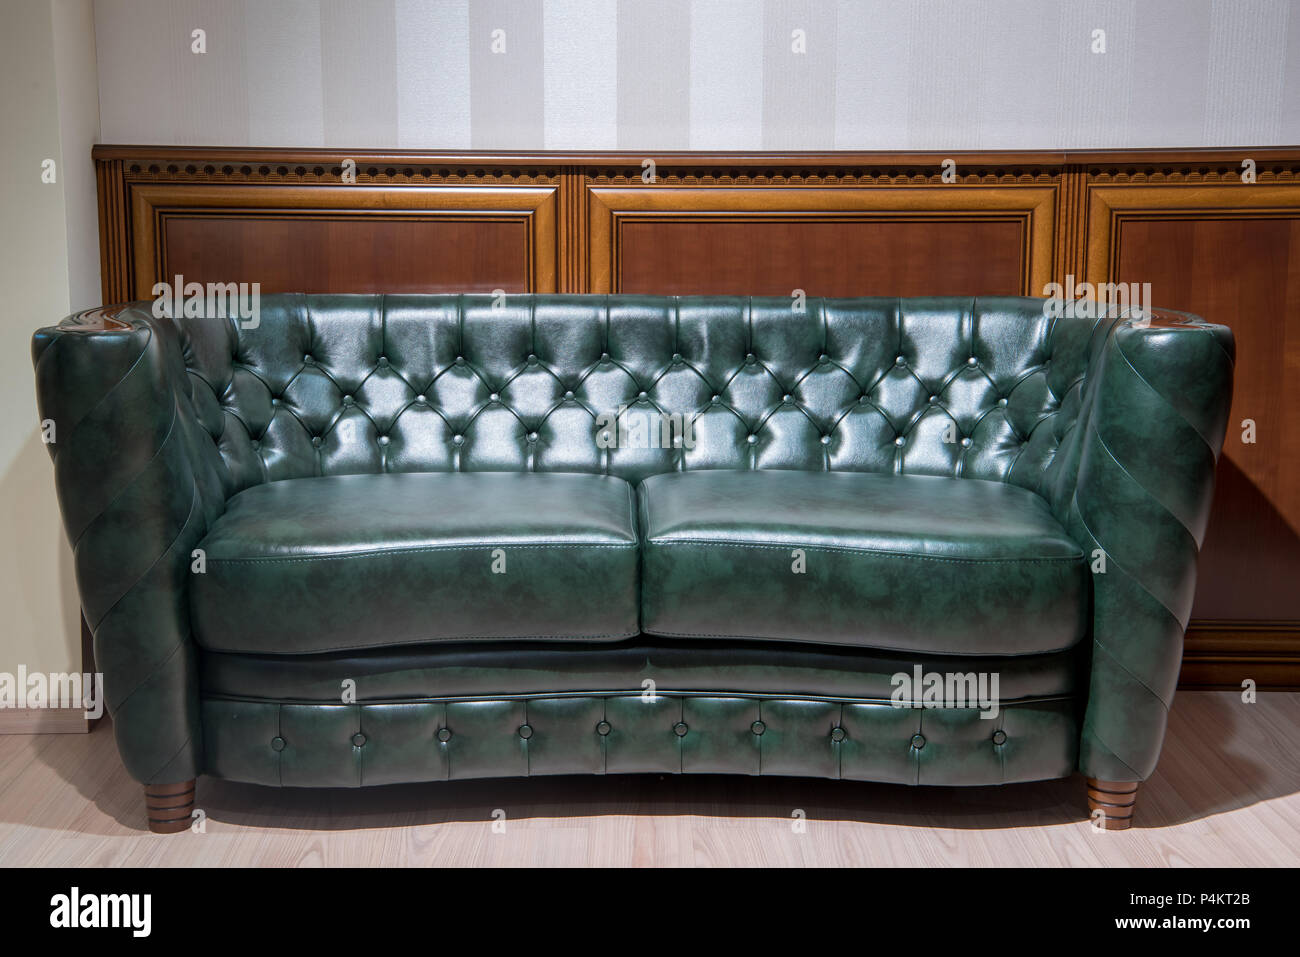 Surprising Green Leather Couch In Front Of Wall With Wooden Decoration Gmtry Best Dining Table And Chair Ideas Images Gmtryco